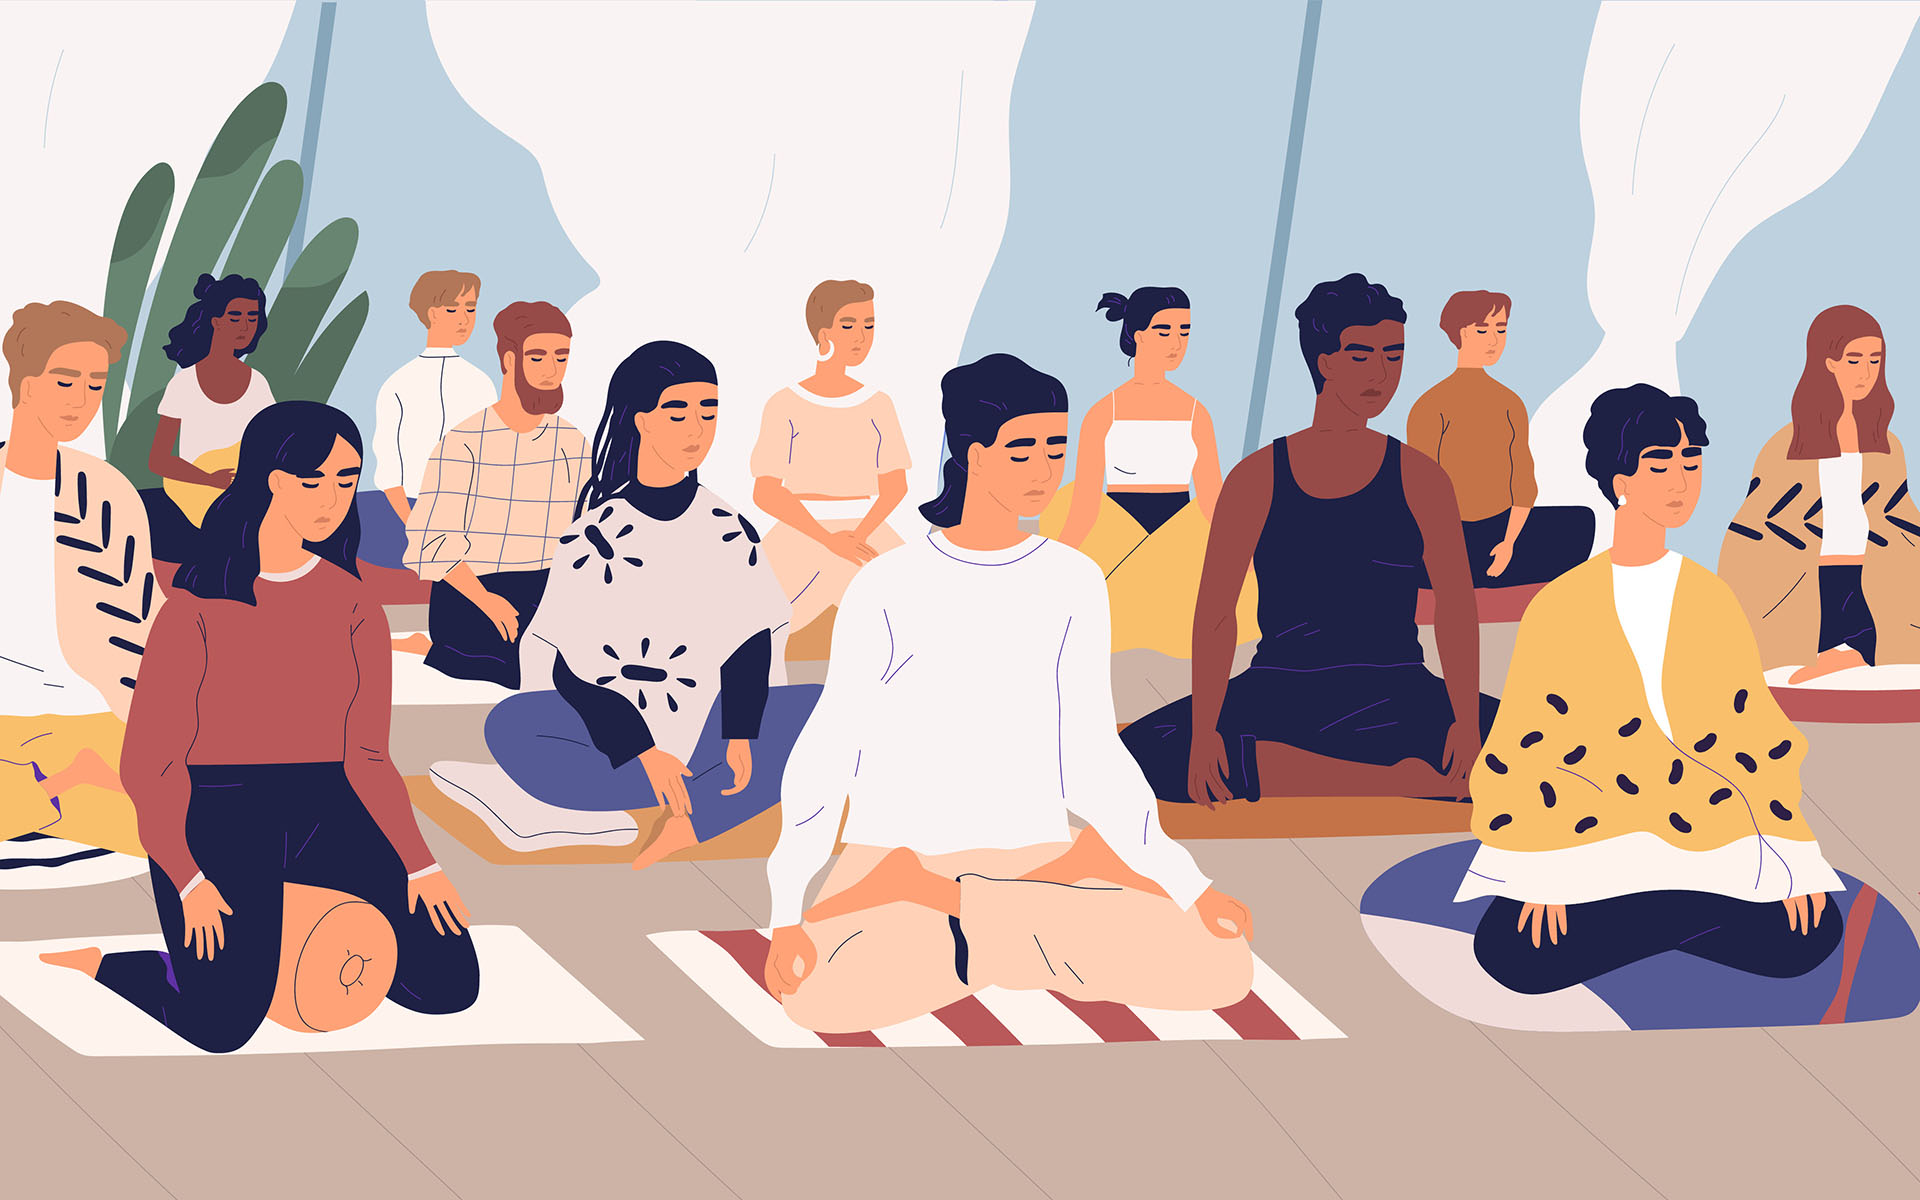 Meditating with others - Group of young men and women sitting on floor, meditating and pe